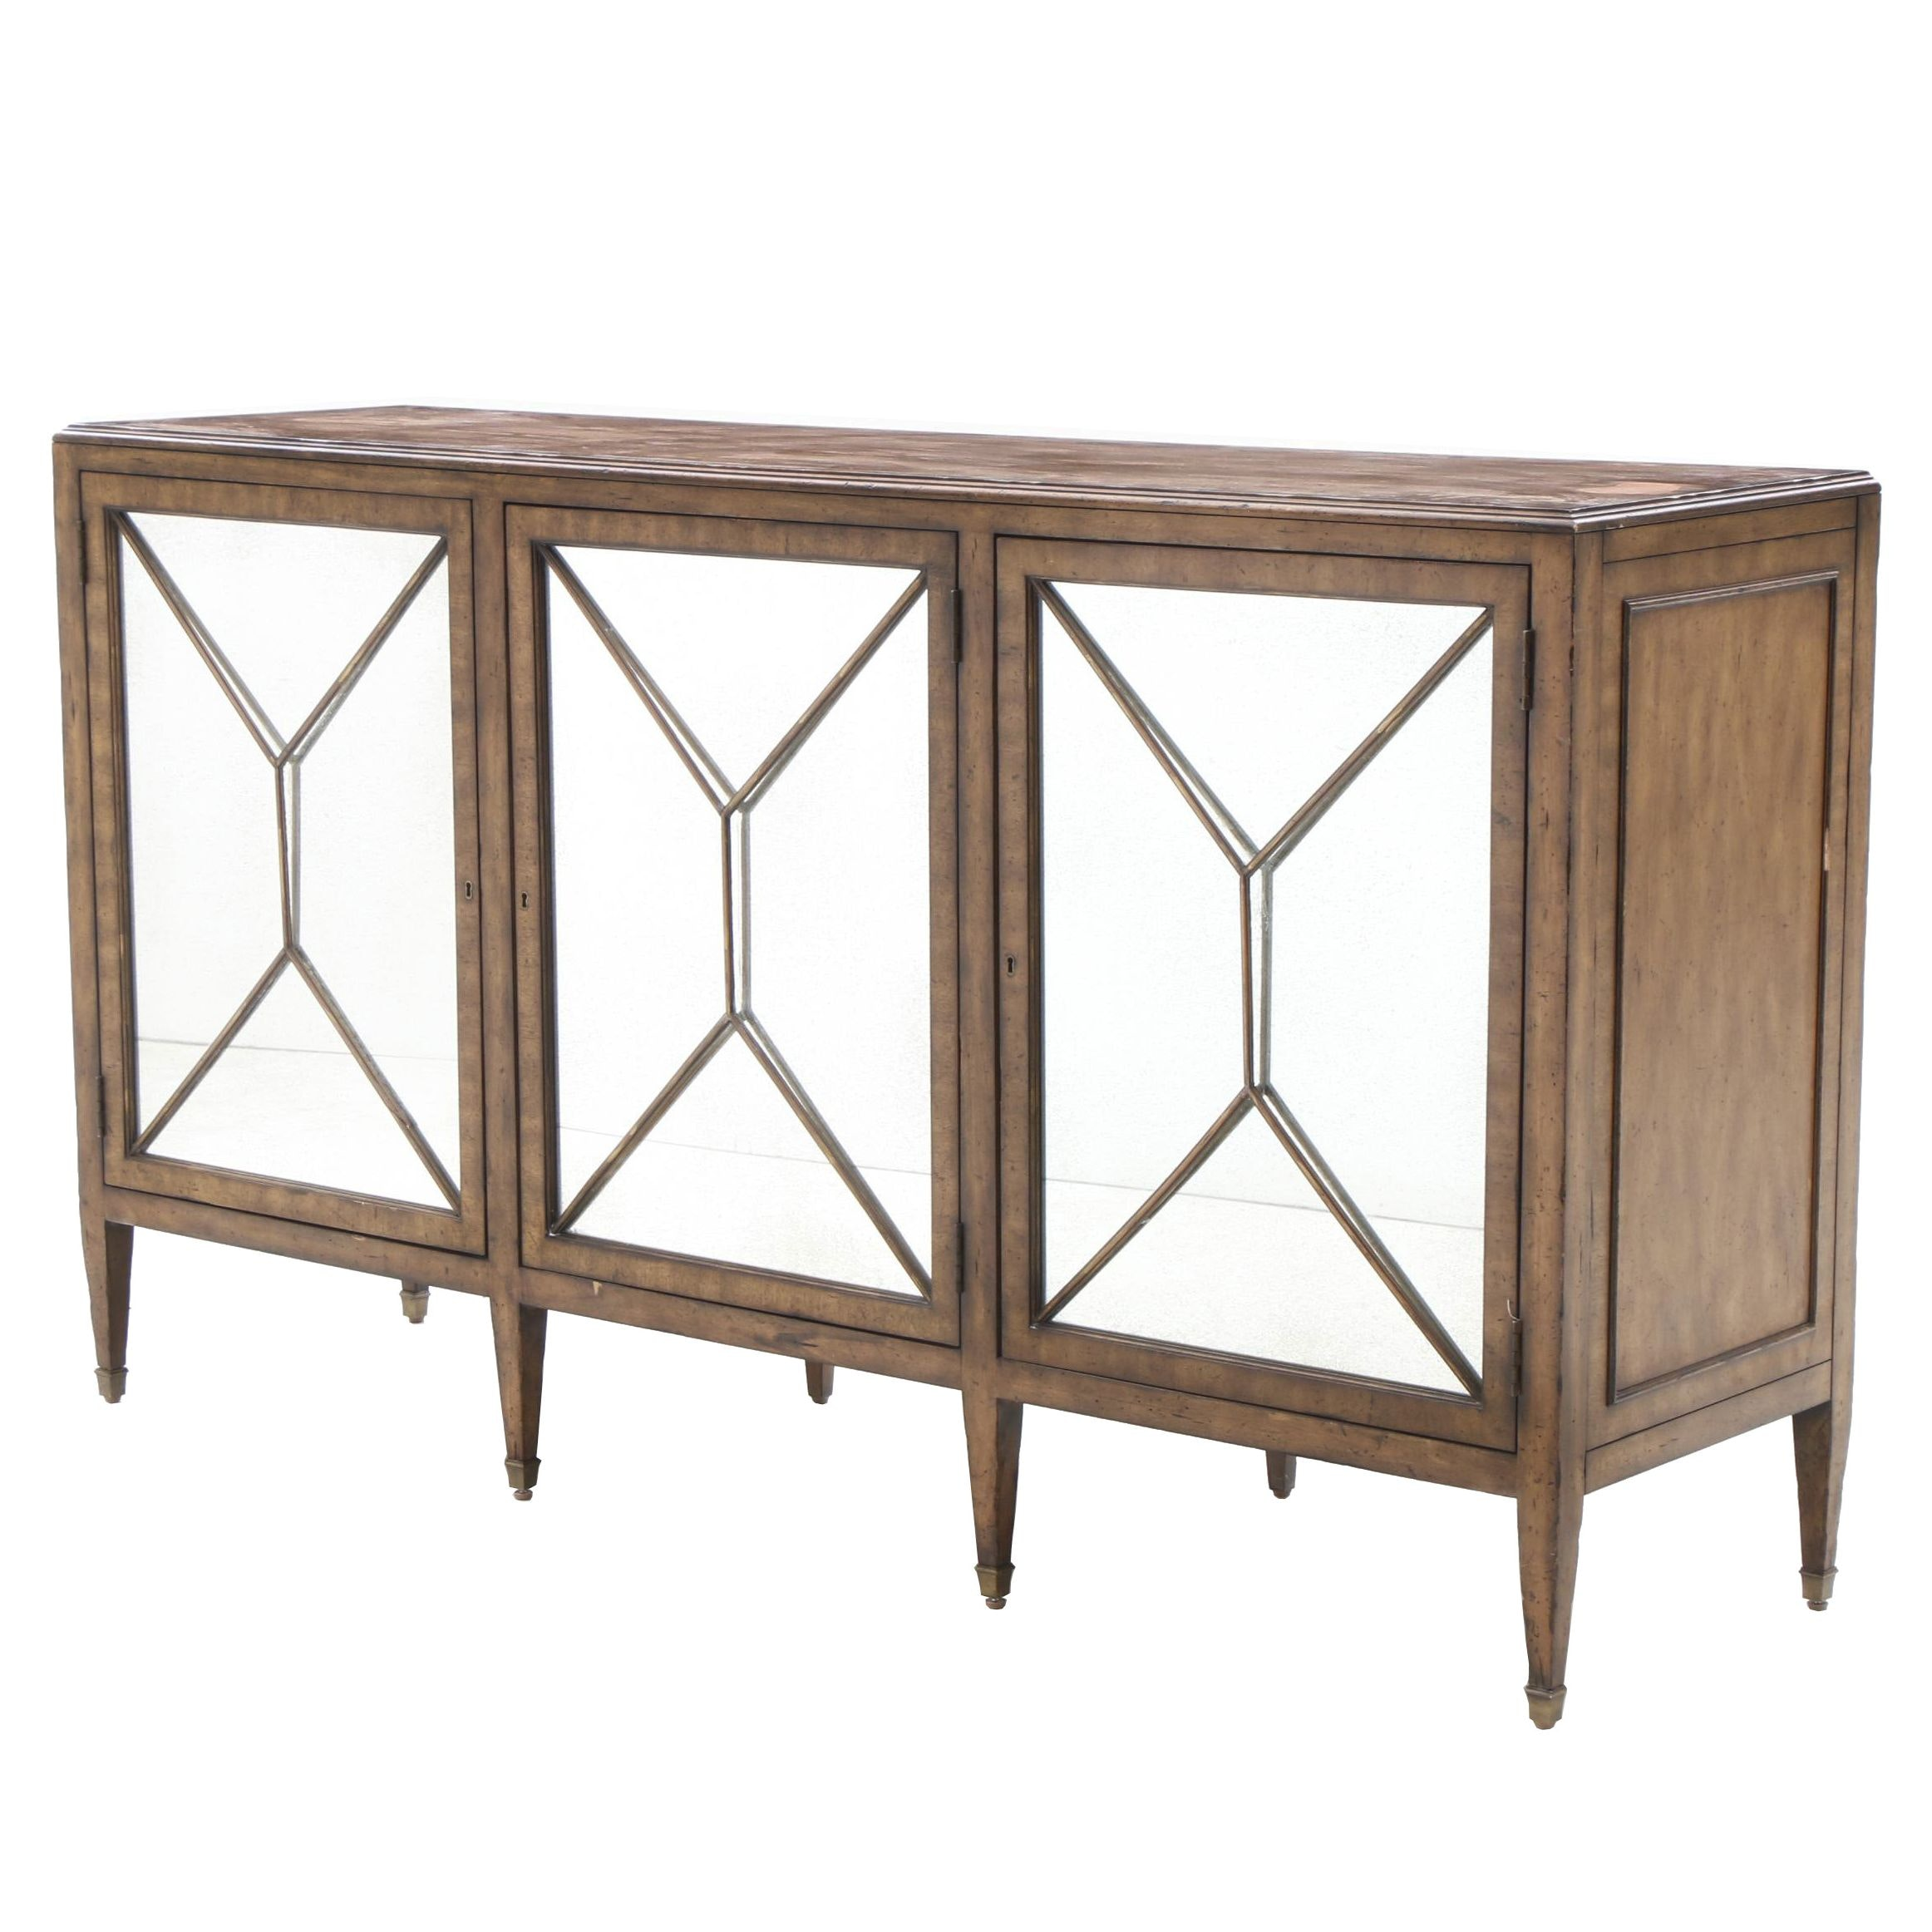 Contemporary Modern Cabinet with Neoclassical Detailing